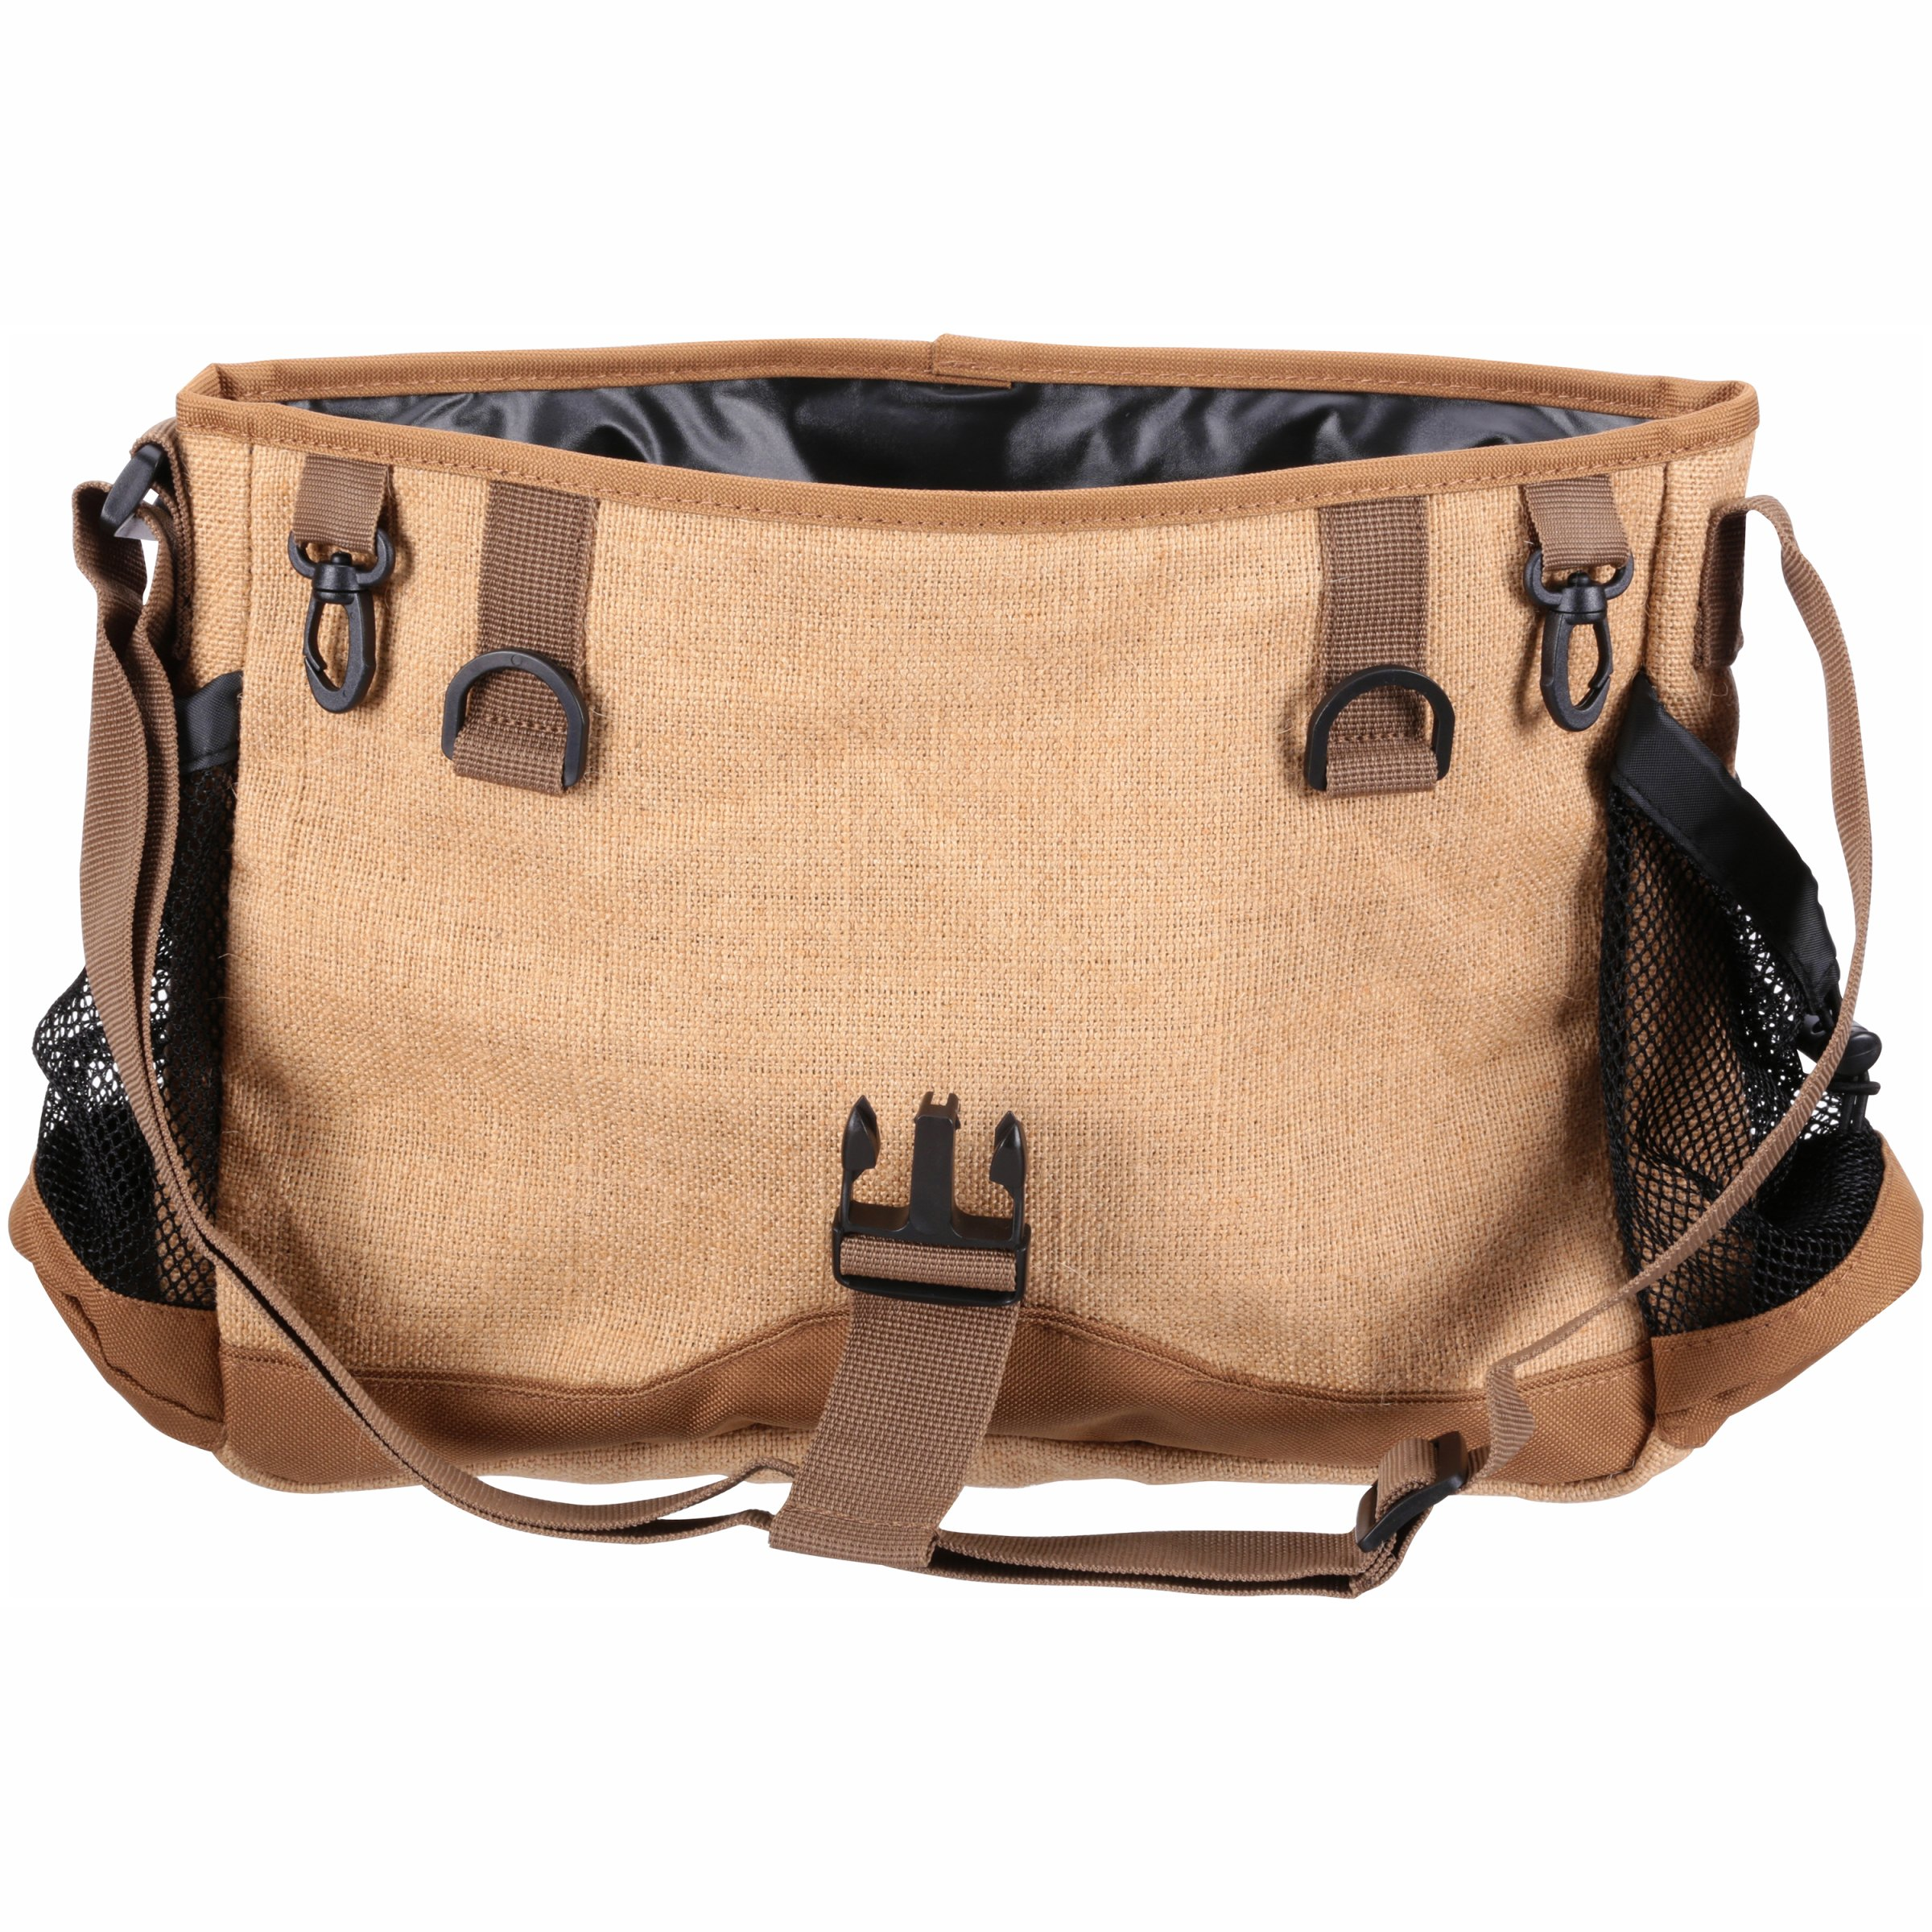 Eagle Claw Canvas Creel Shoulder Strap Fishing Bag Organizer Outdoor Accessory